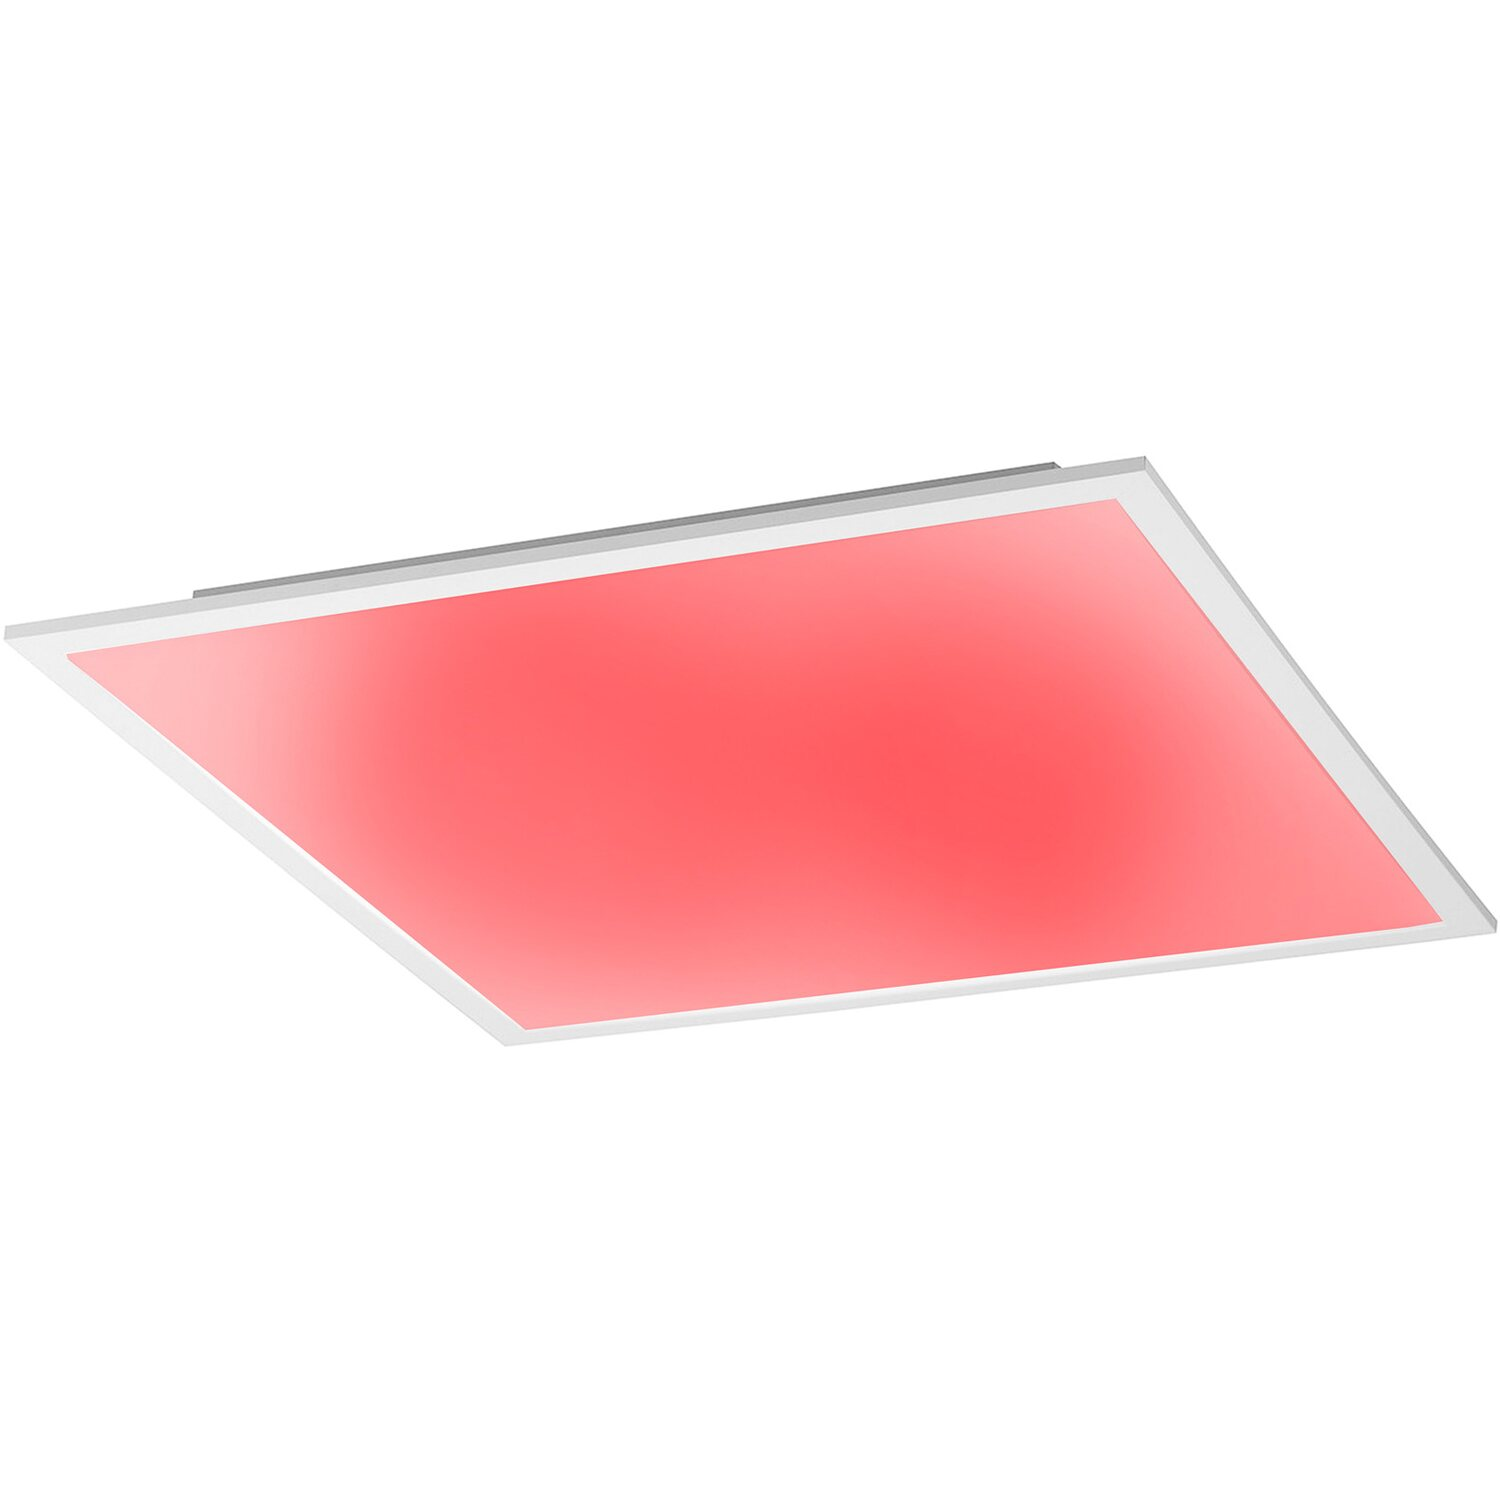 743145_2 Wunderbar Led Panel Rgb Dimmbar Dekorationen